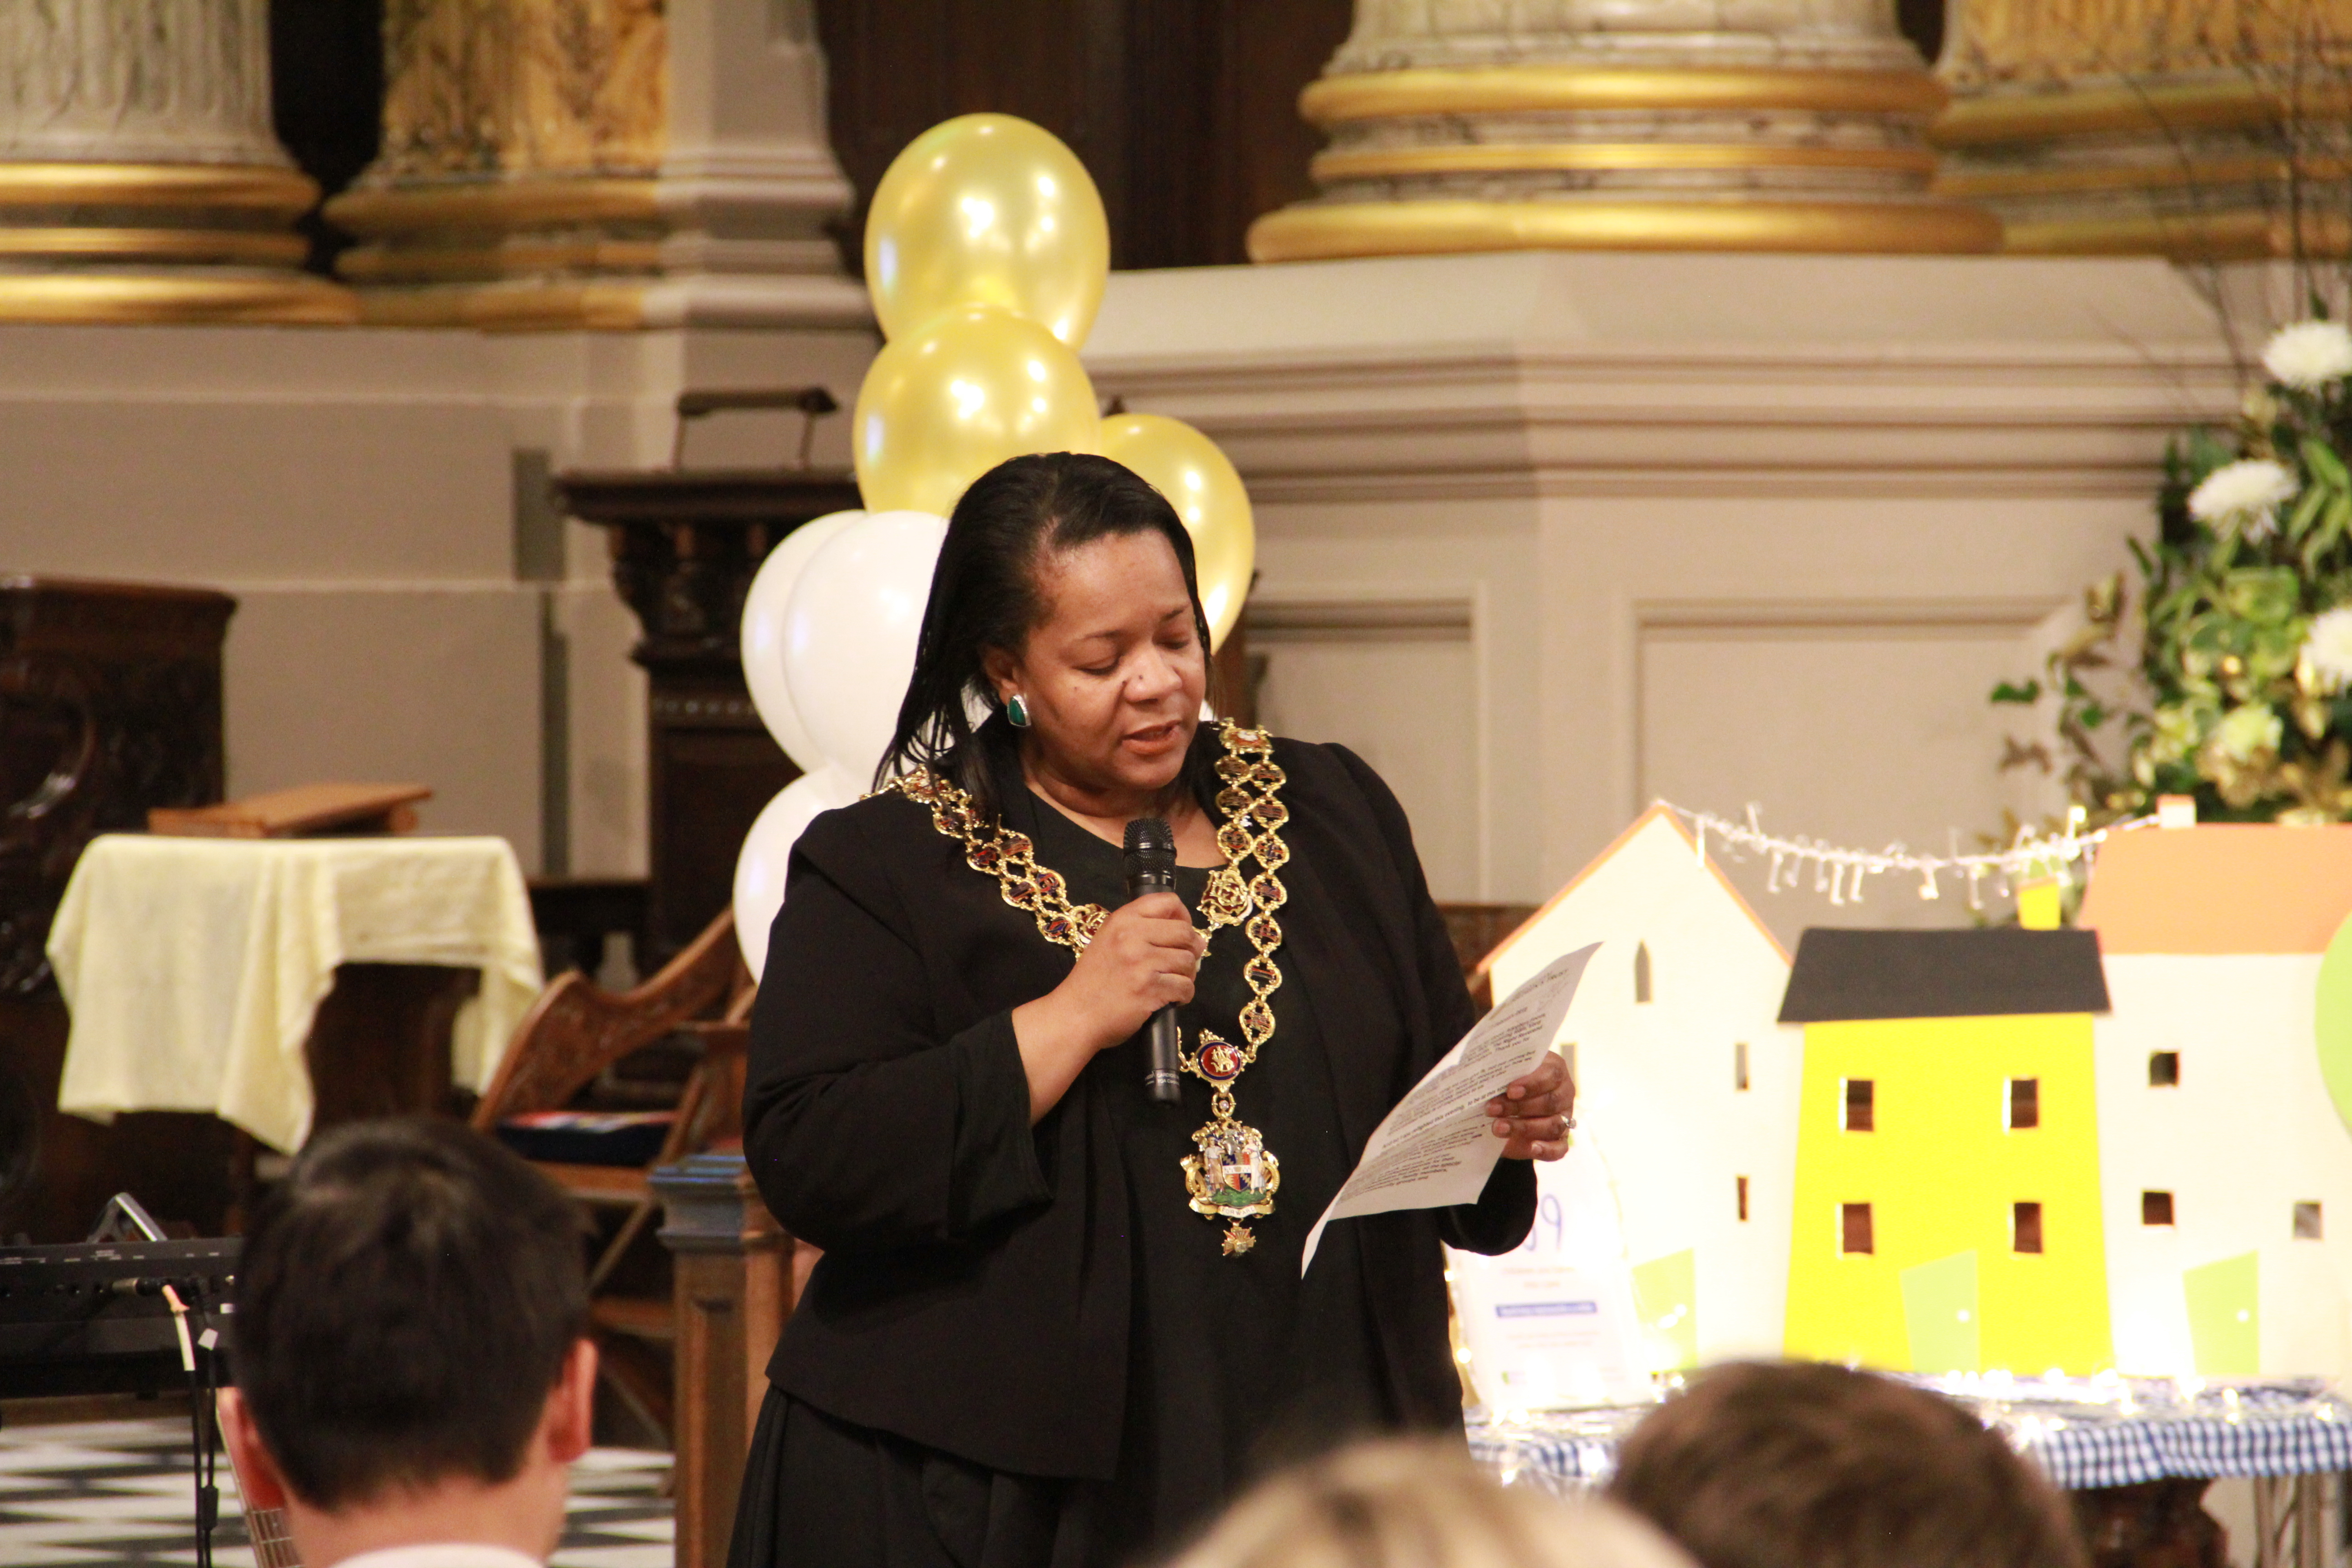 Lord Mayor at Birmingham Cathedral